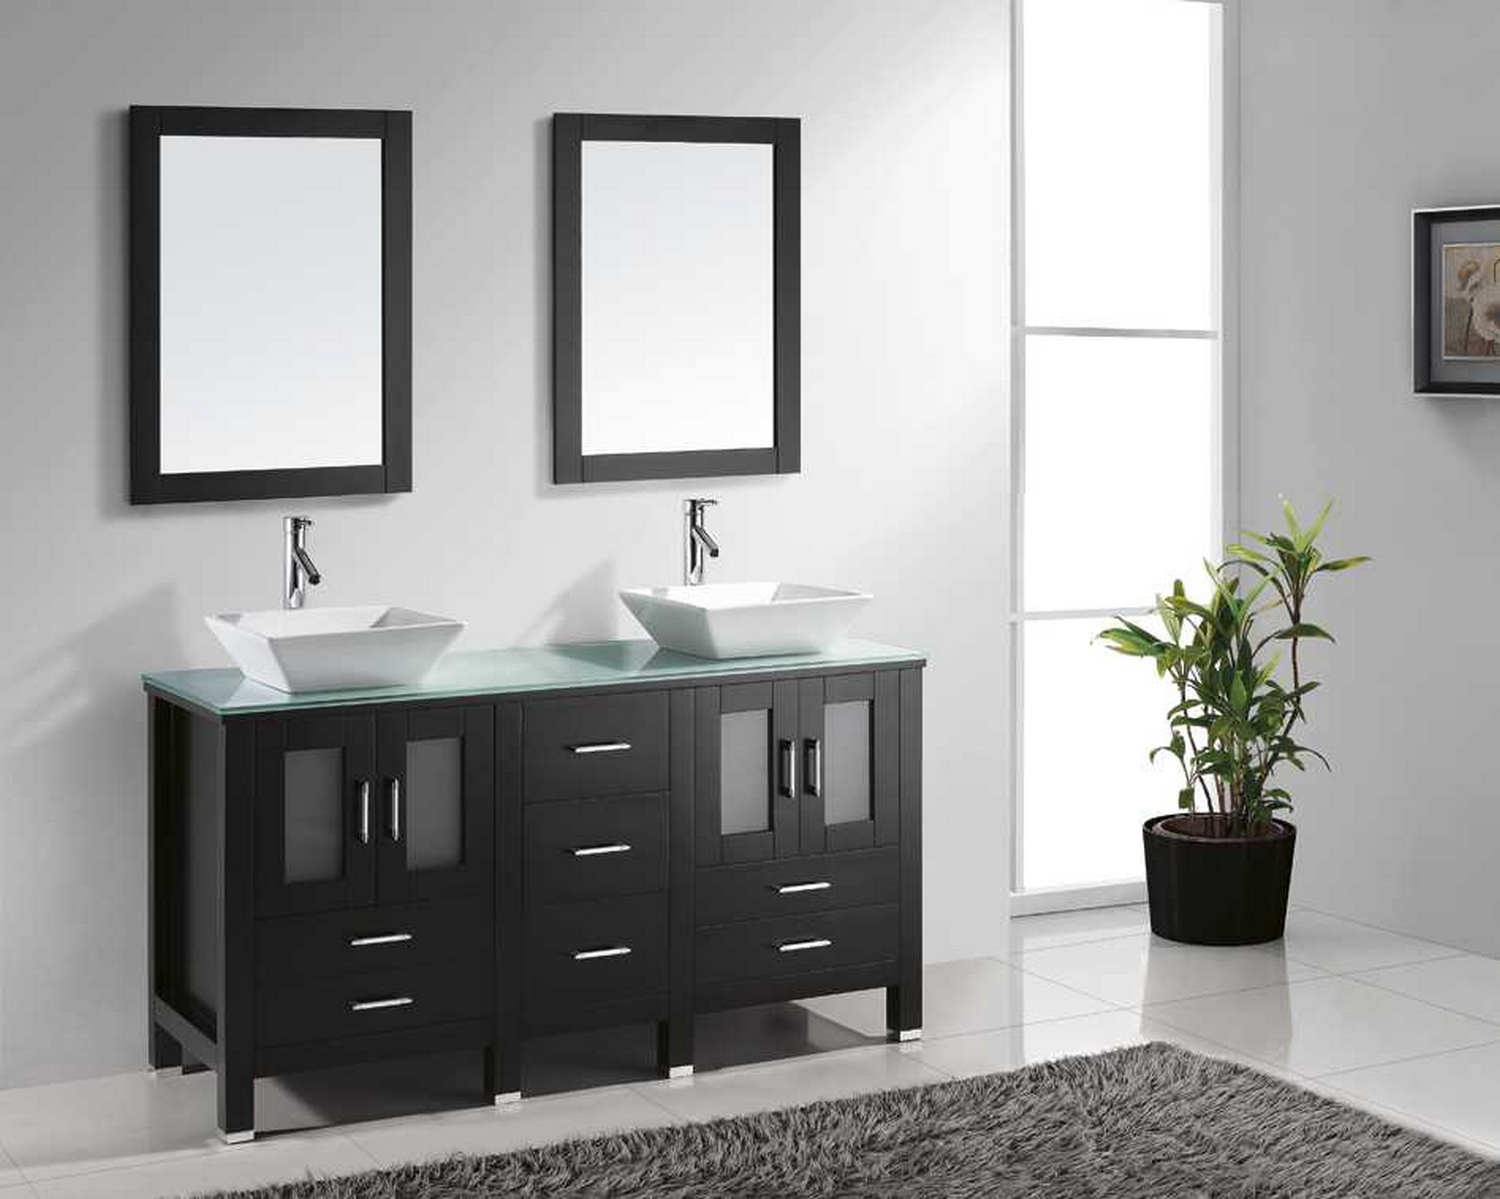 60 double bathroom vanity cabinet set in espresso tempered glass